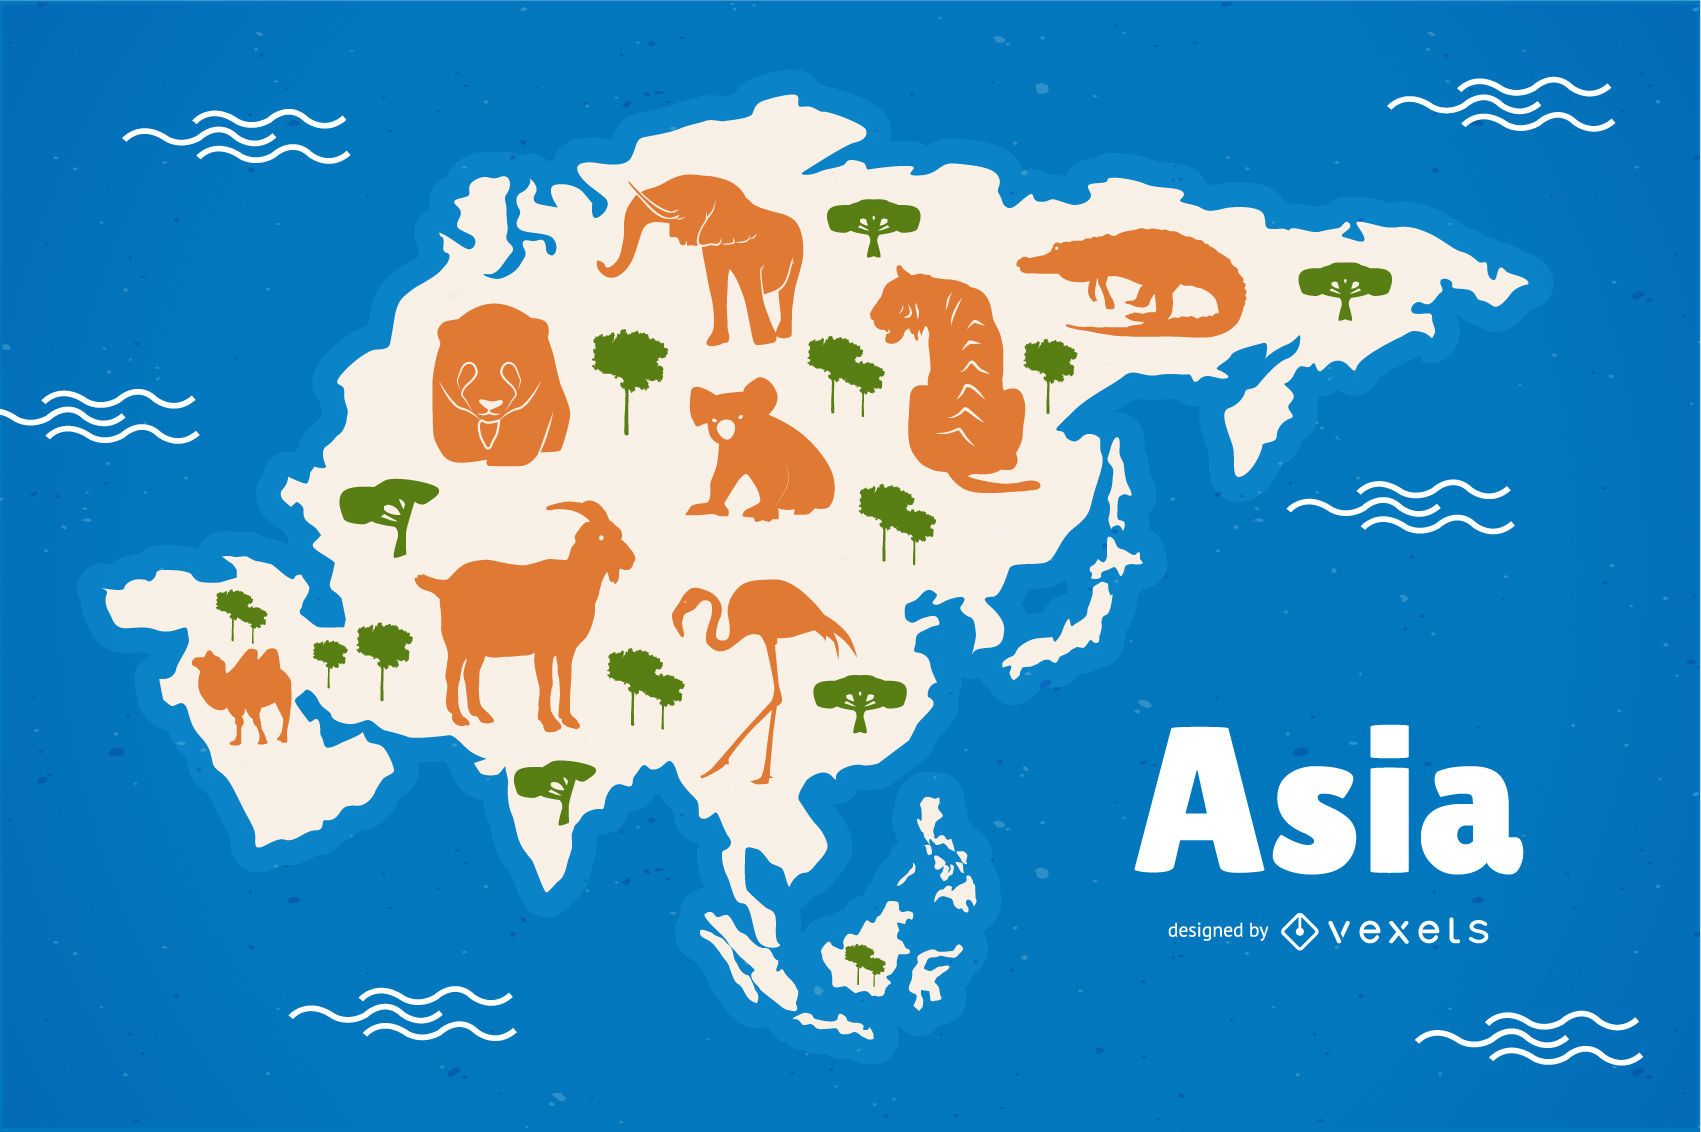 Asia Animal Map Illustration - Vector download on map of asia with asia, map of east asia only, mapa politica asia, lanzhou on a political map of asia, map of asia and america, 1940s map of europe and asia, map od asia, map of asia 2013, full map of asia, map of asia countries, whole map of asia,